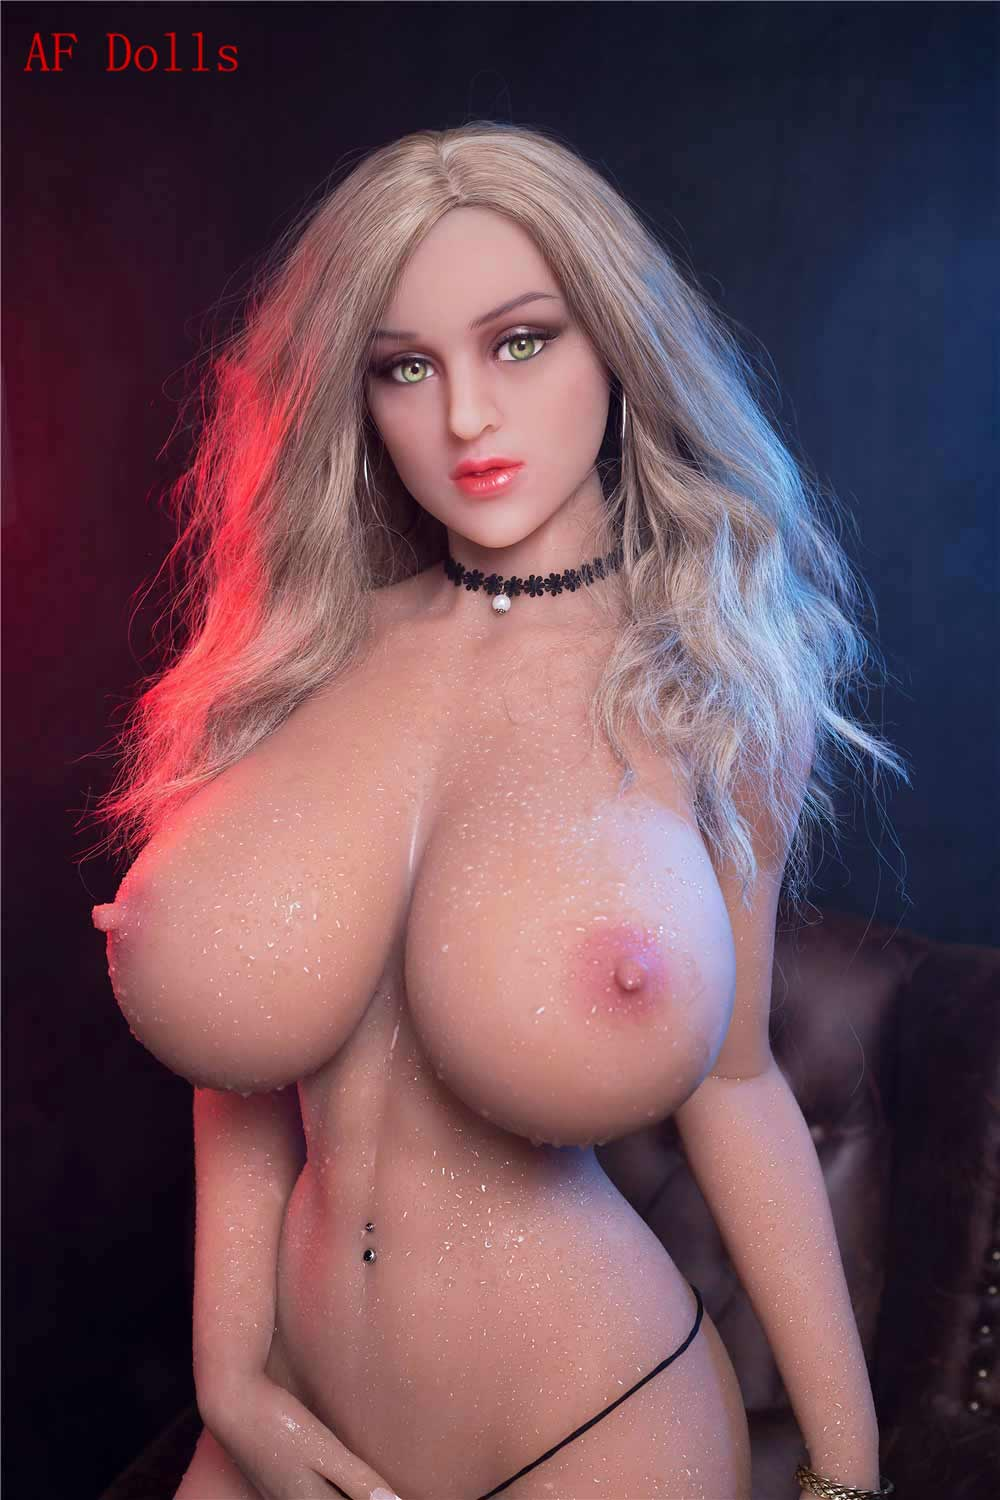 Big breasted sex doll with bra taken off